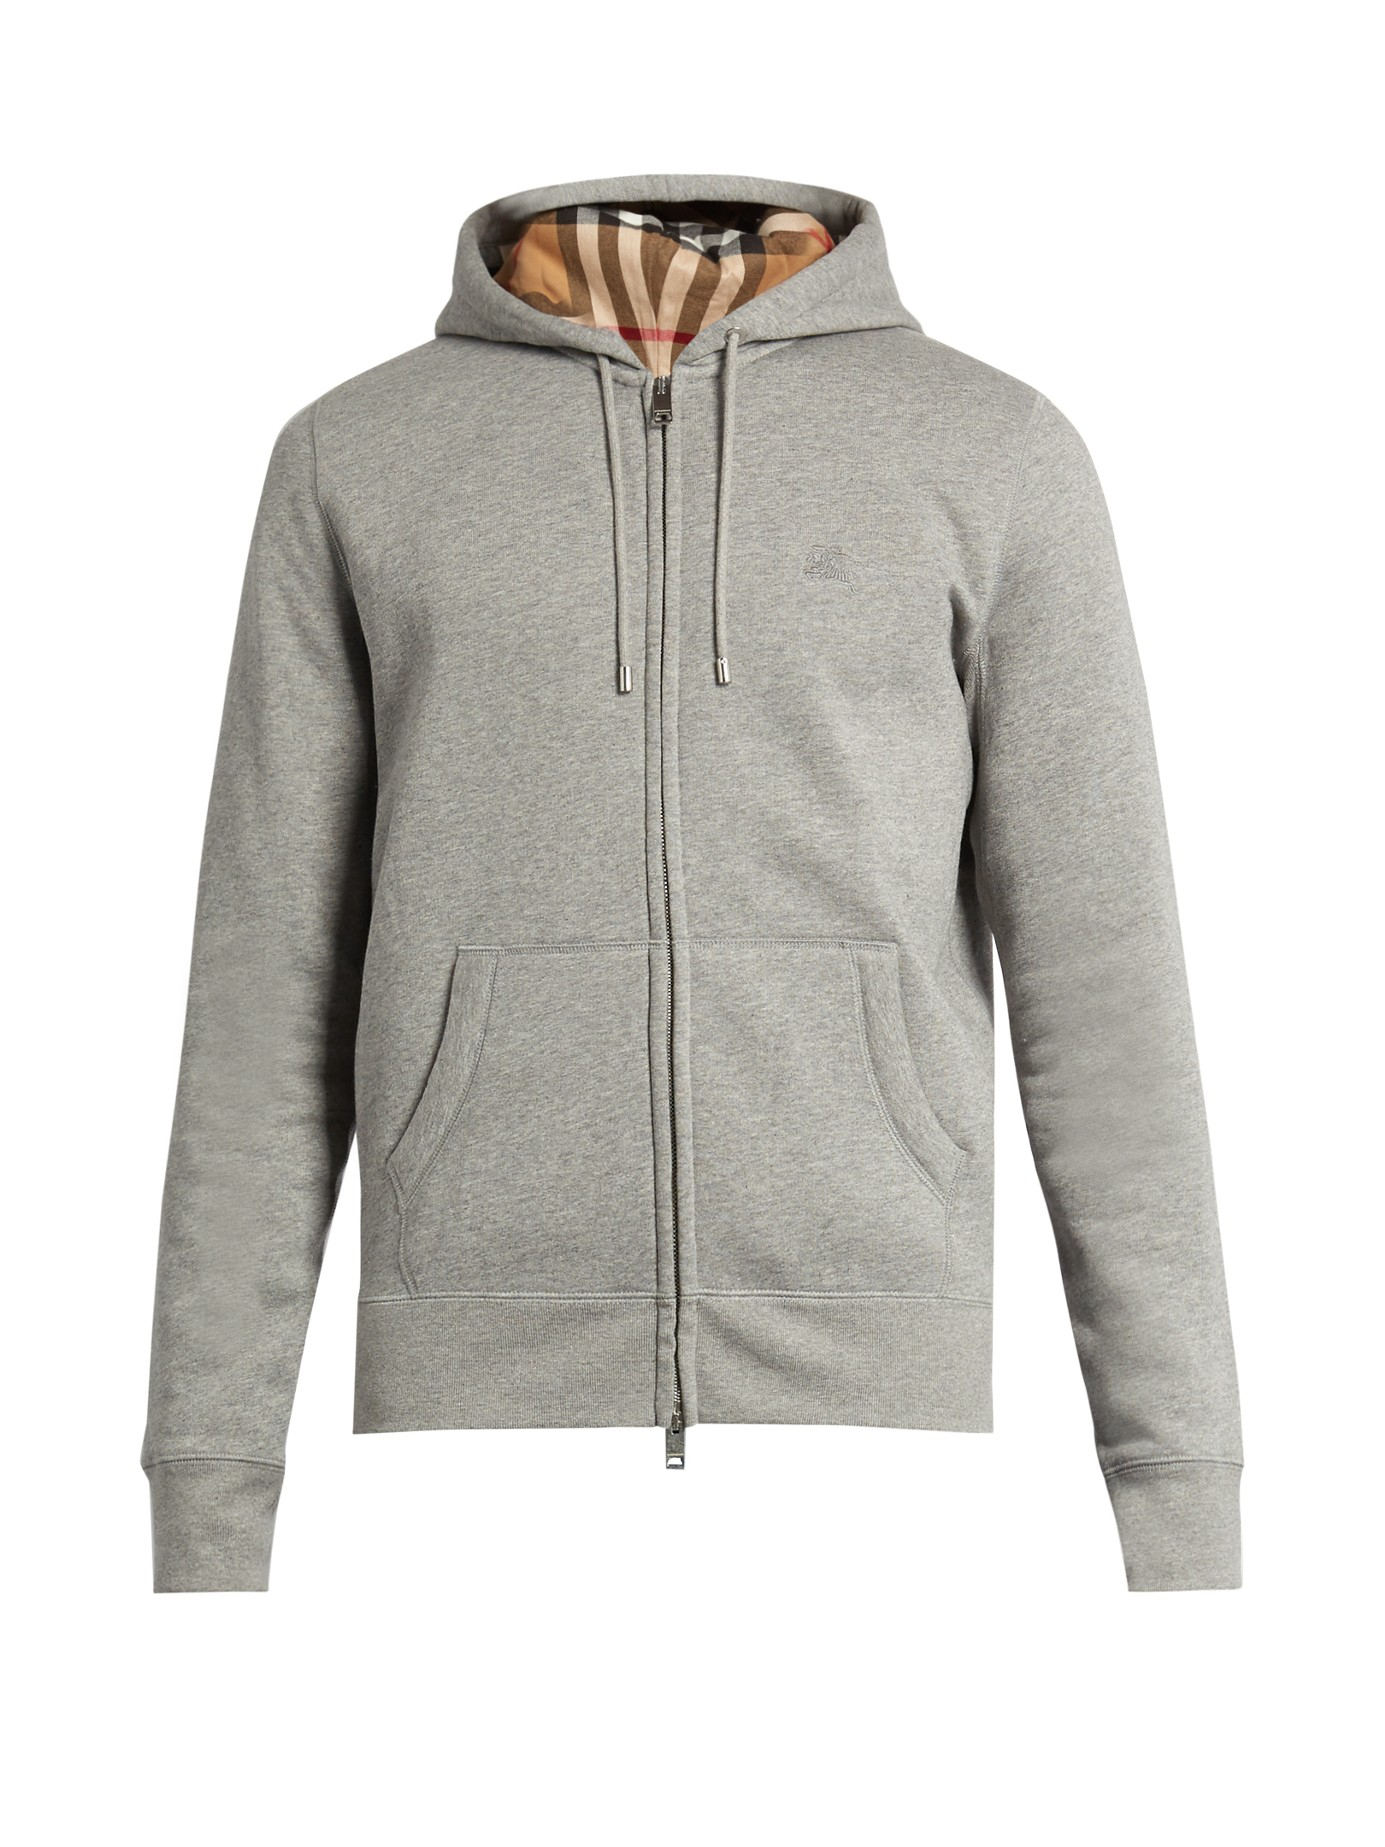 Lyst Burberry Brit Cotton Hoody In Gray For Men